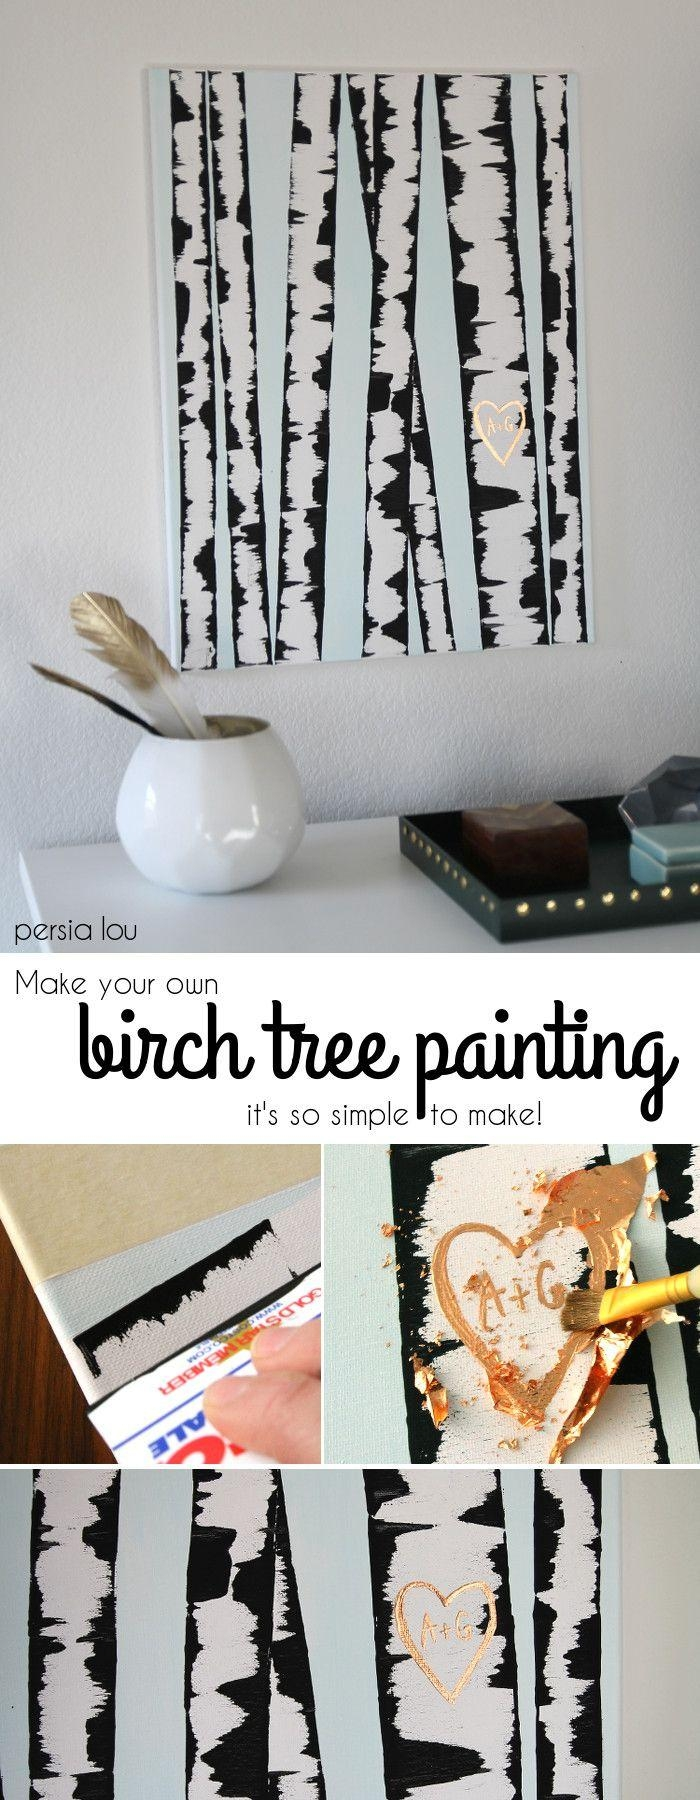 Best 25+ Diy Canvas Art Ideas On Pinterest | Diy Canvas, Diy With Diy Pinterest Canvas Art (View 2 of 20)